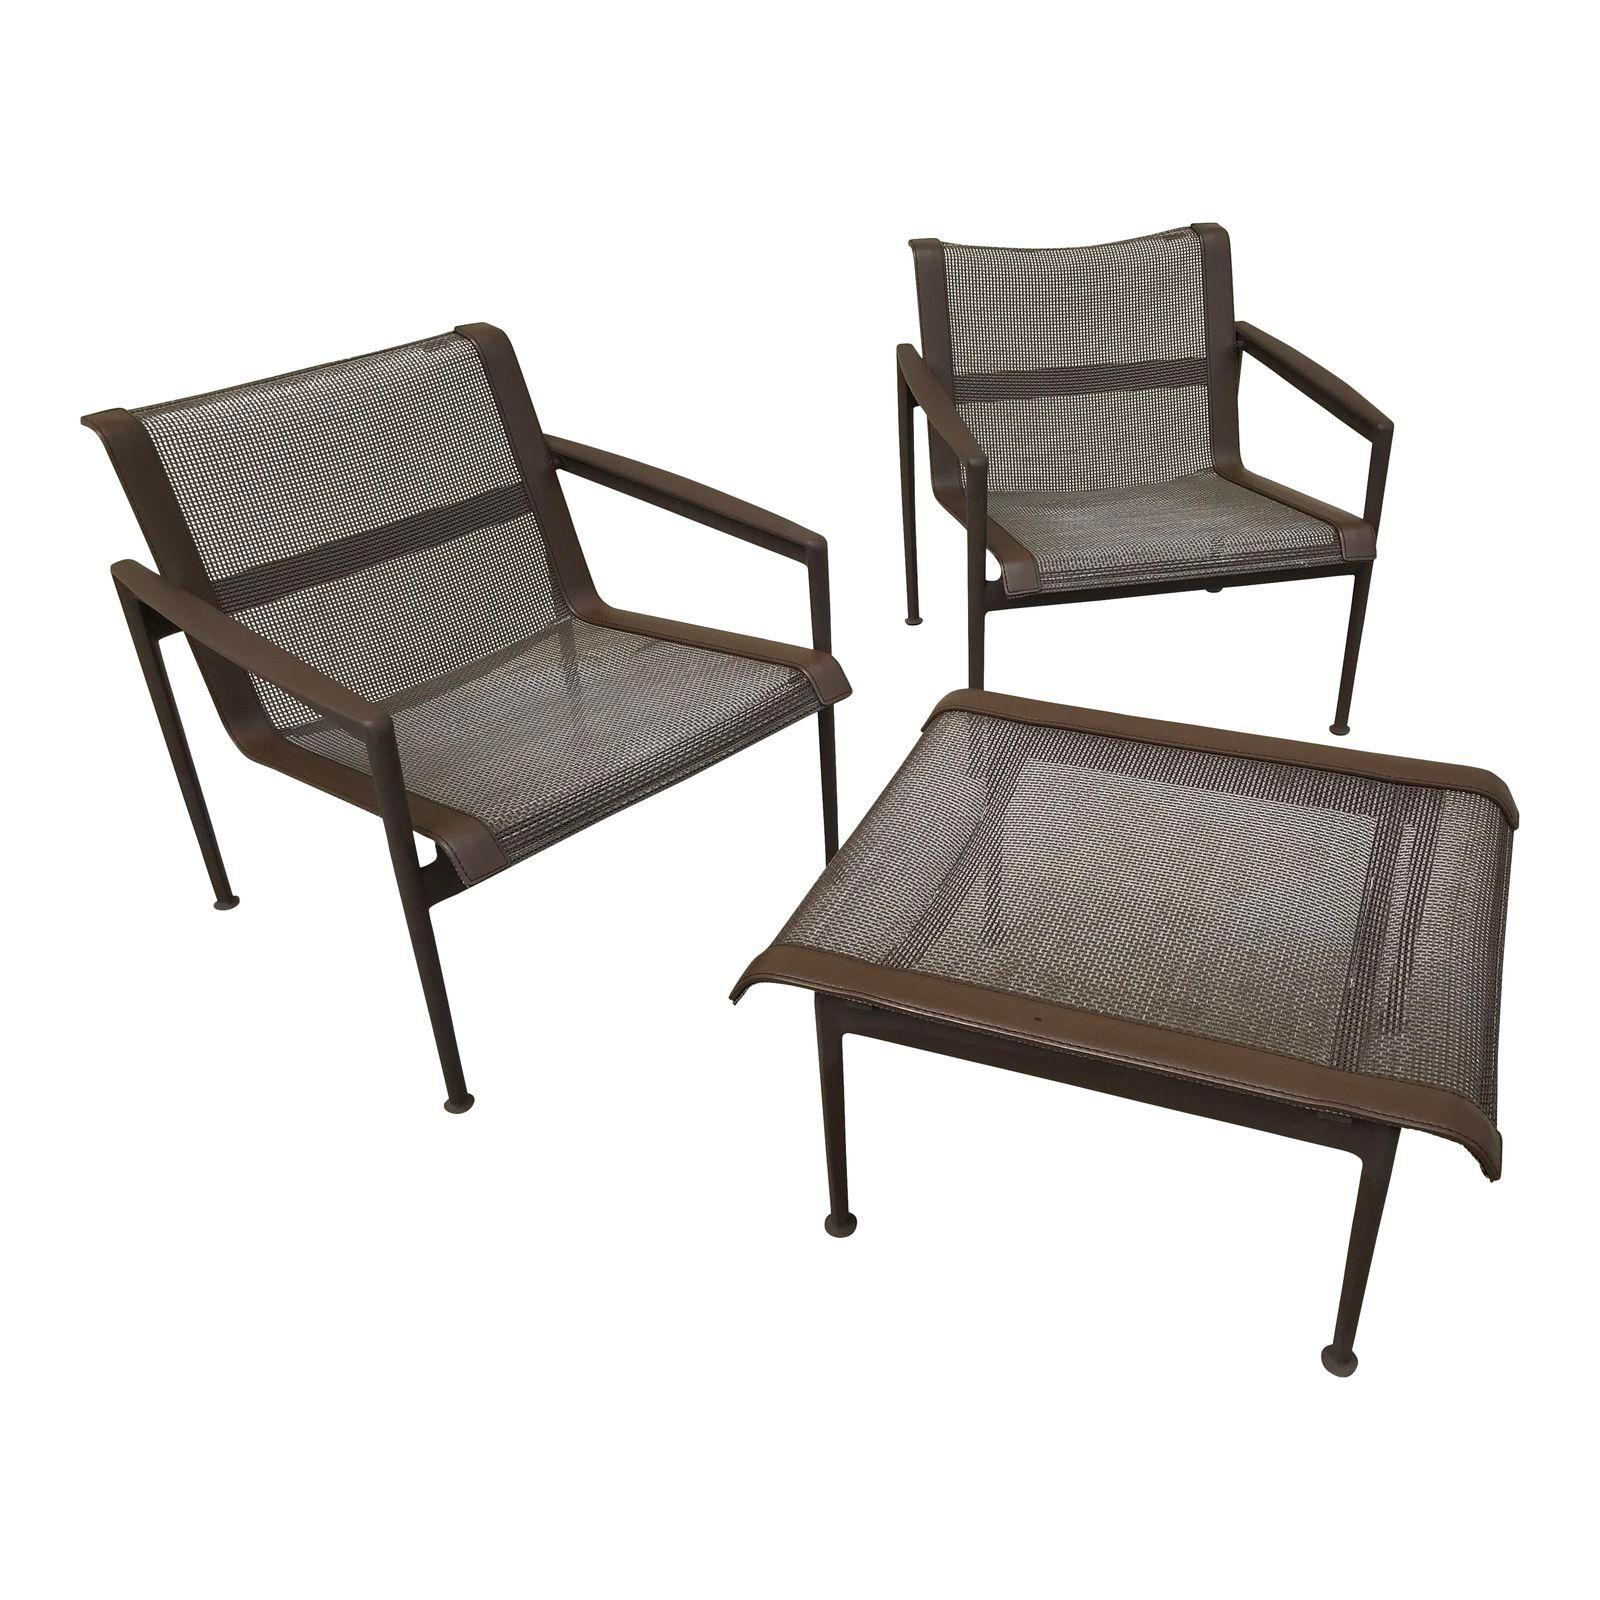 1966 Mid-Century Modern Richard Schultz for Knoll Lounge Chairs and Ottoman - 3 Pieces